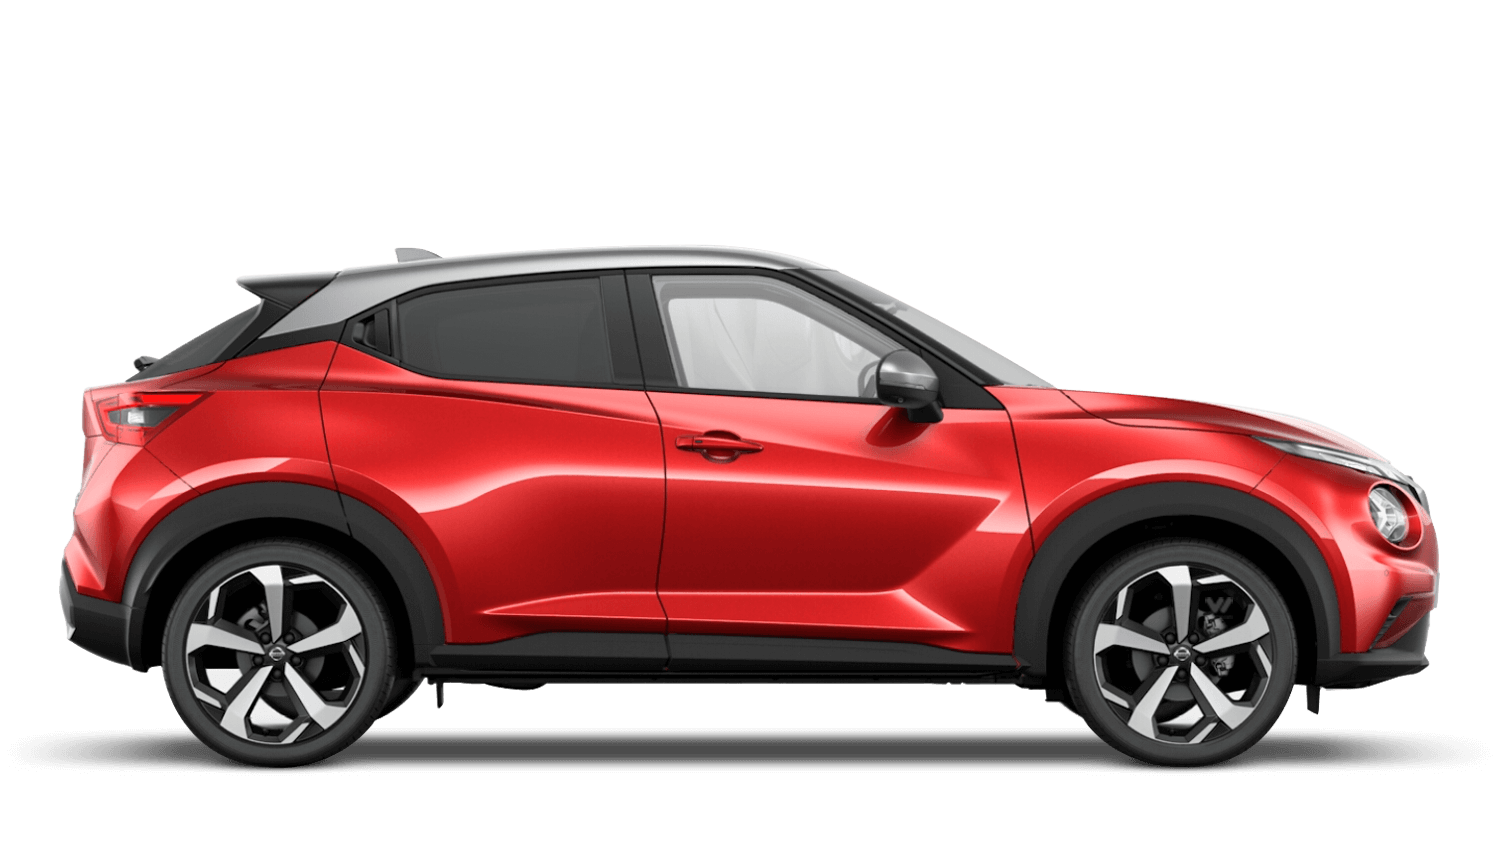 Fuji Sunset Red with Blade Silver Roof Next Generation Nissan Juke